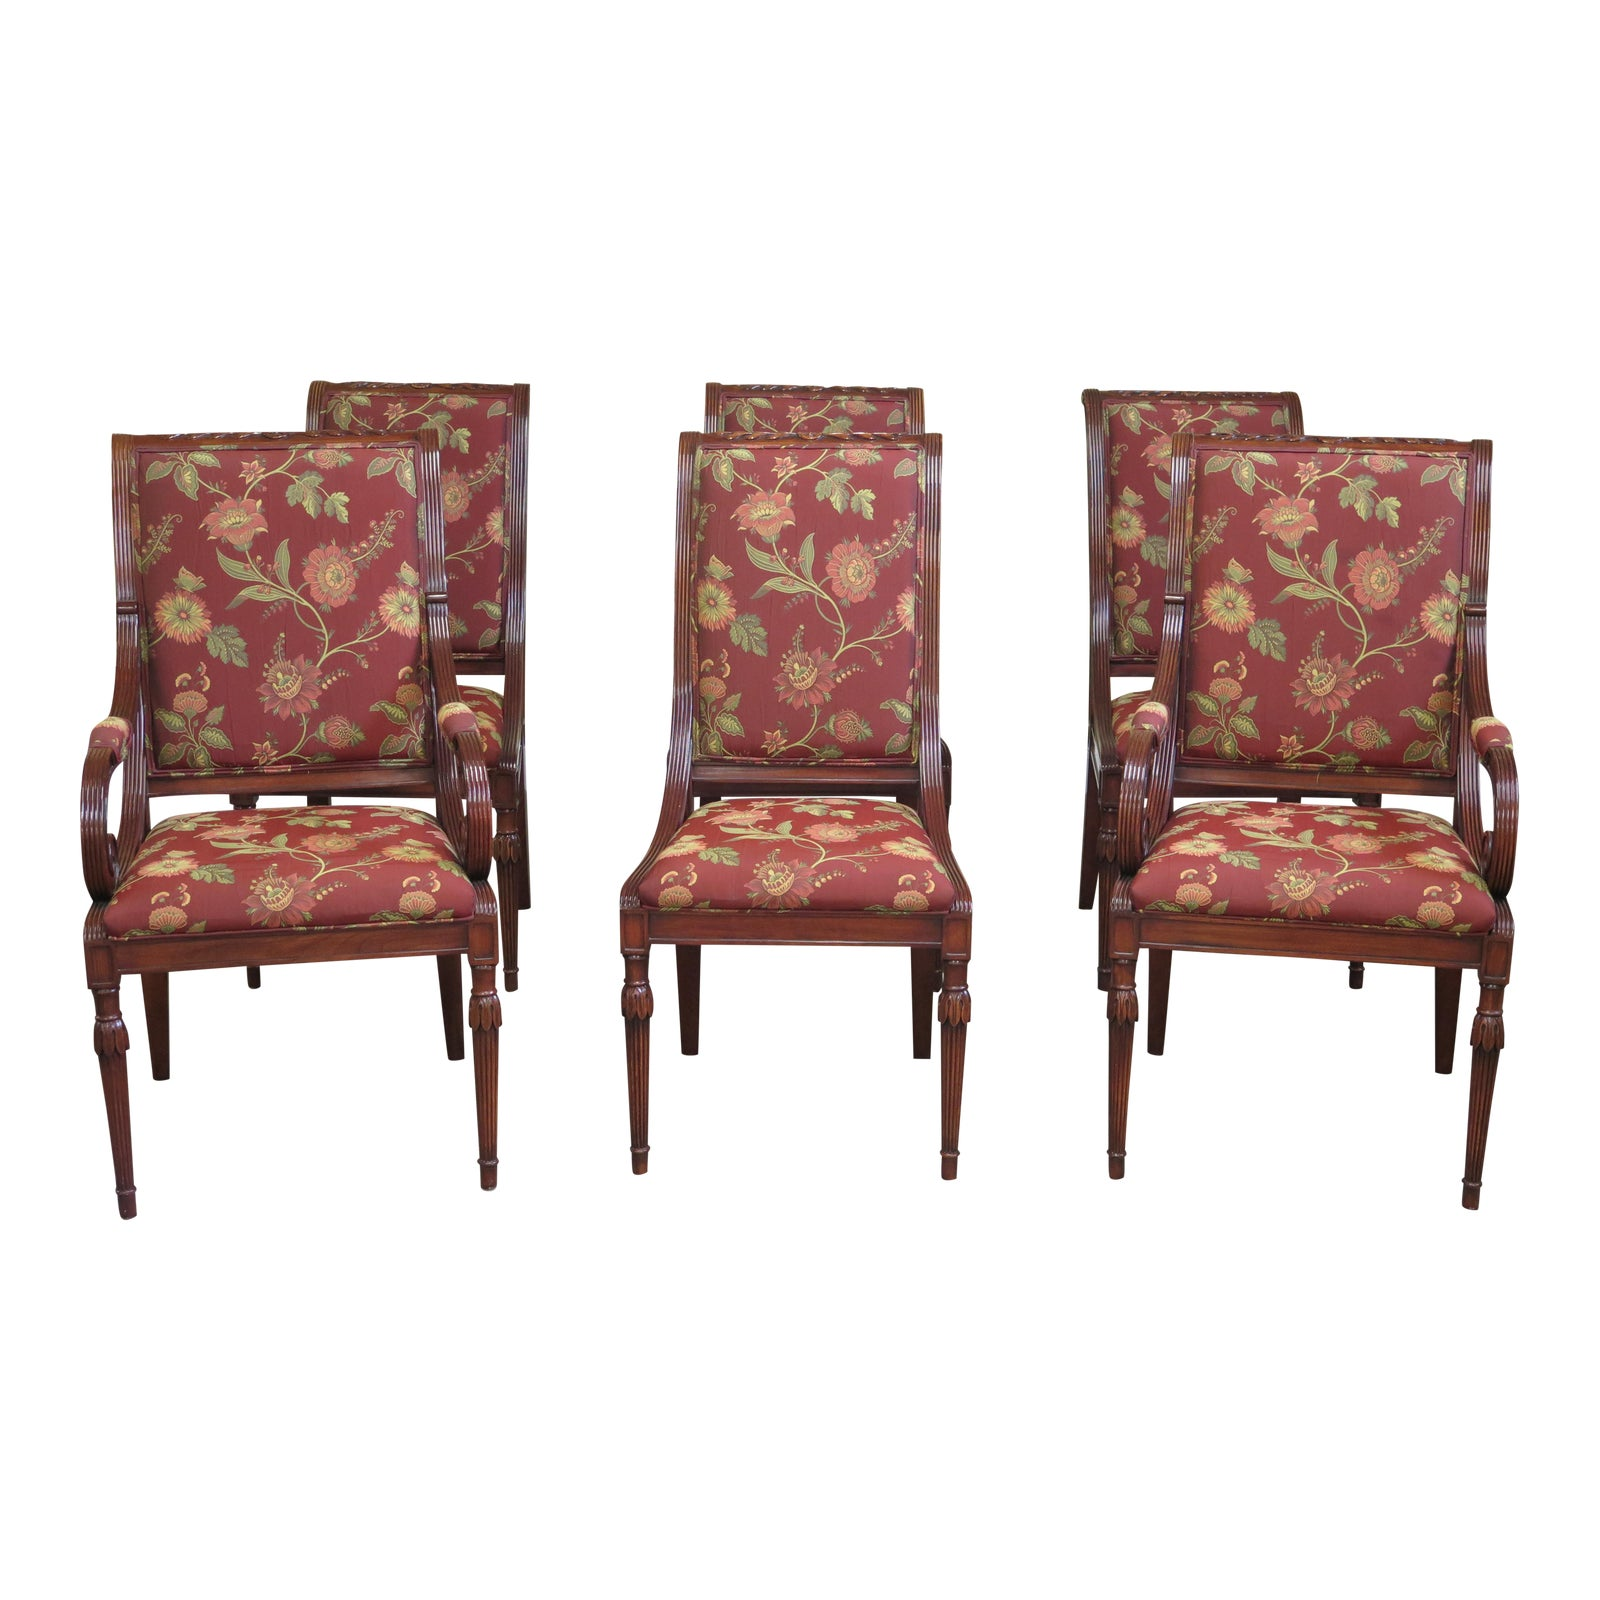 Regency Dining Room: Karges Regency Style Dining Room Chairs - Set Of 6